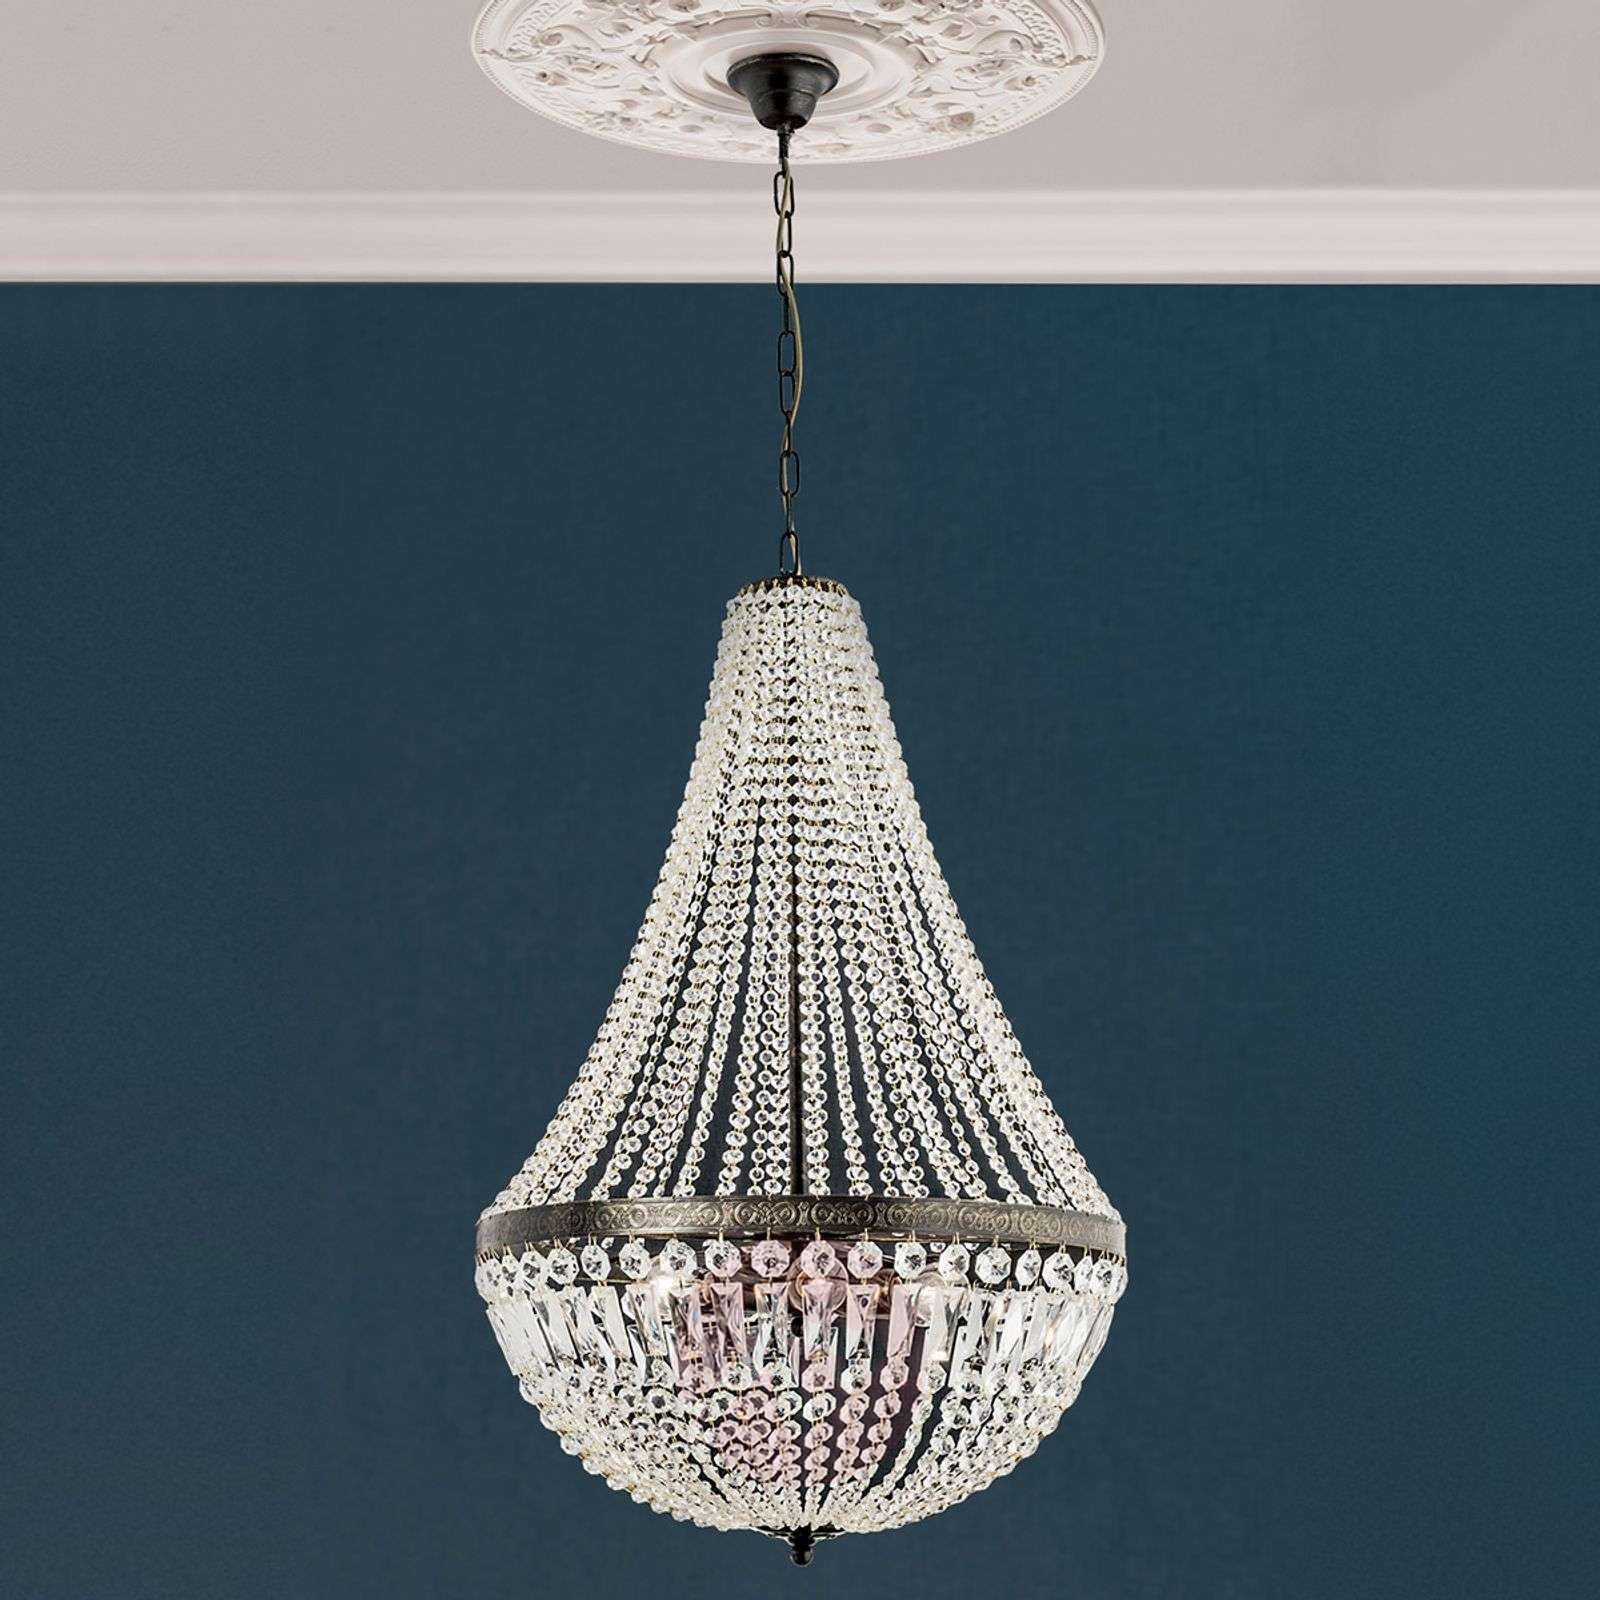 Suspension en cristal Andara 60 cm-7254717-01